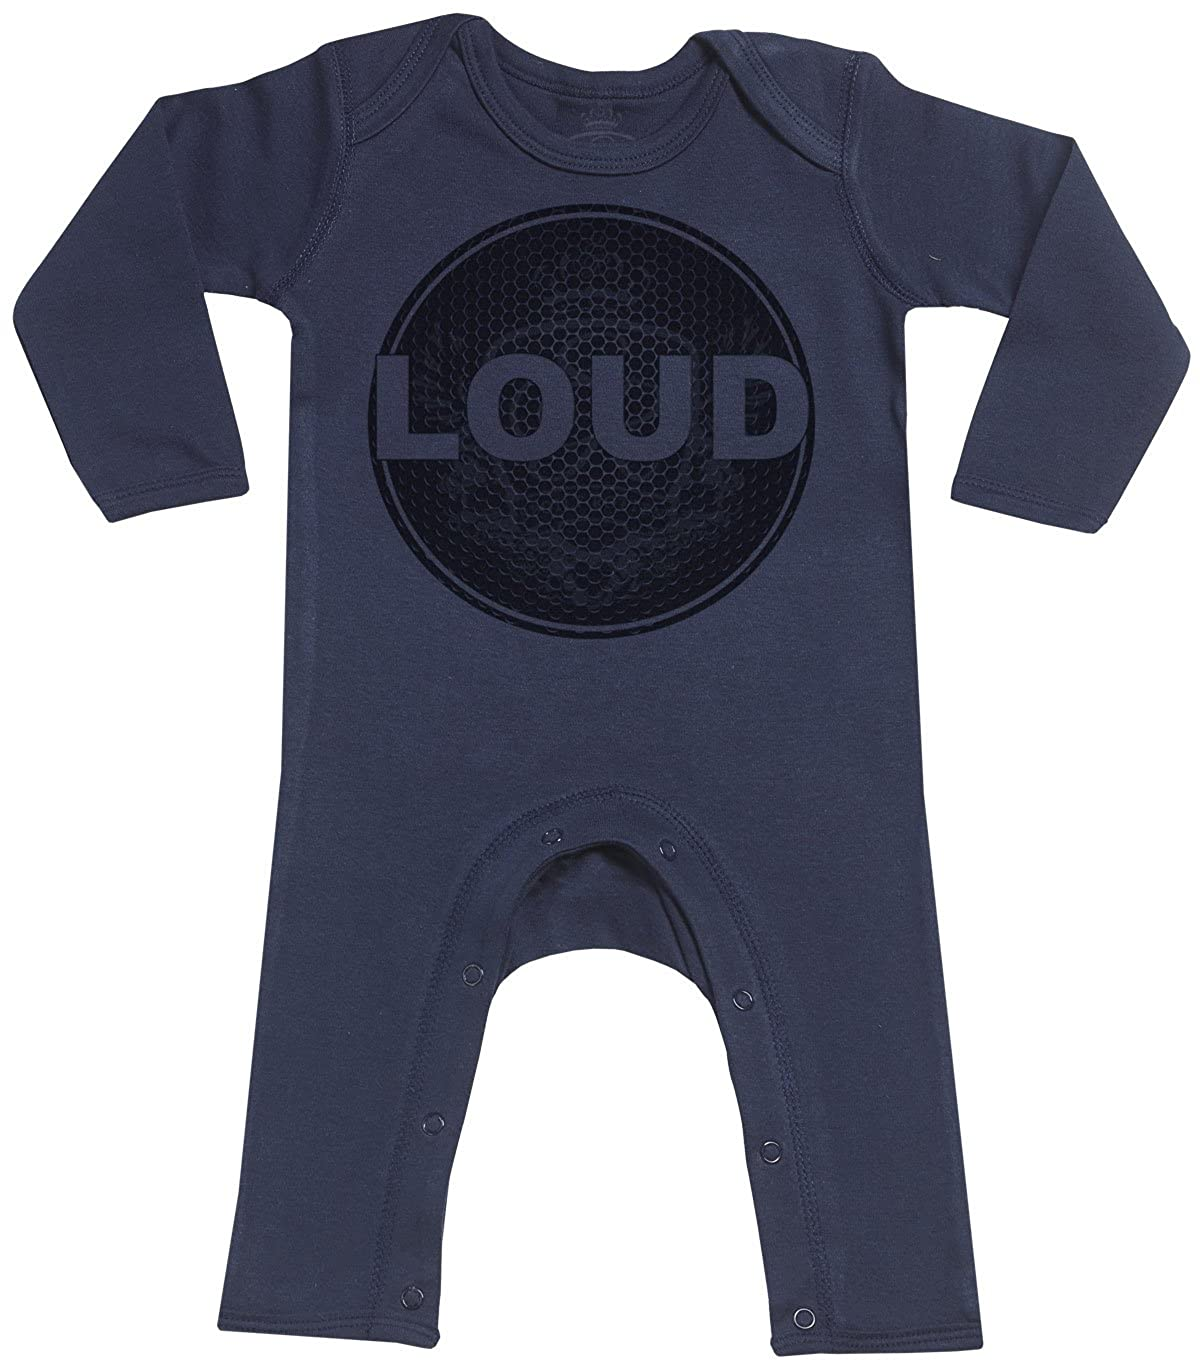 Baby Jumpsuit Baby Romper Baby Rompersuit Loud Baby Footless Romper Baby Sleepsuit SR